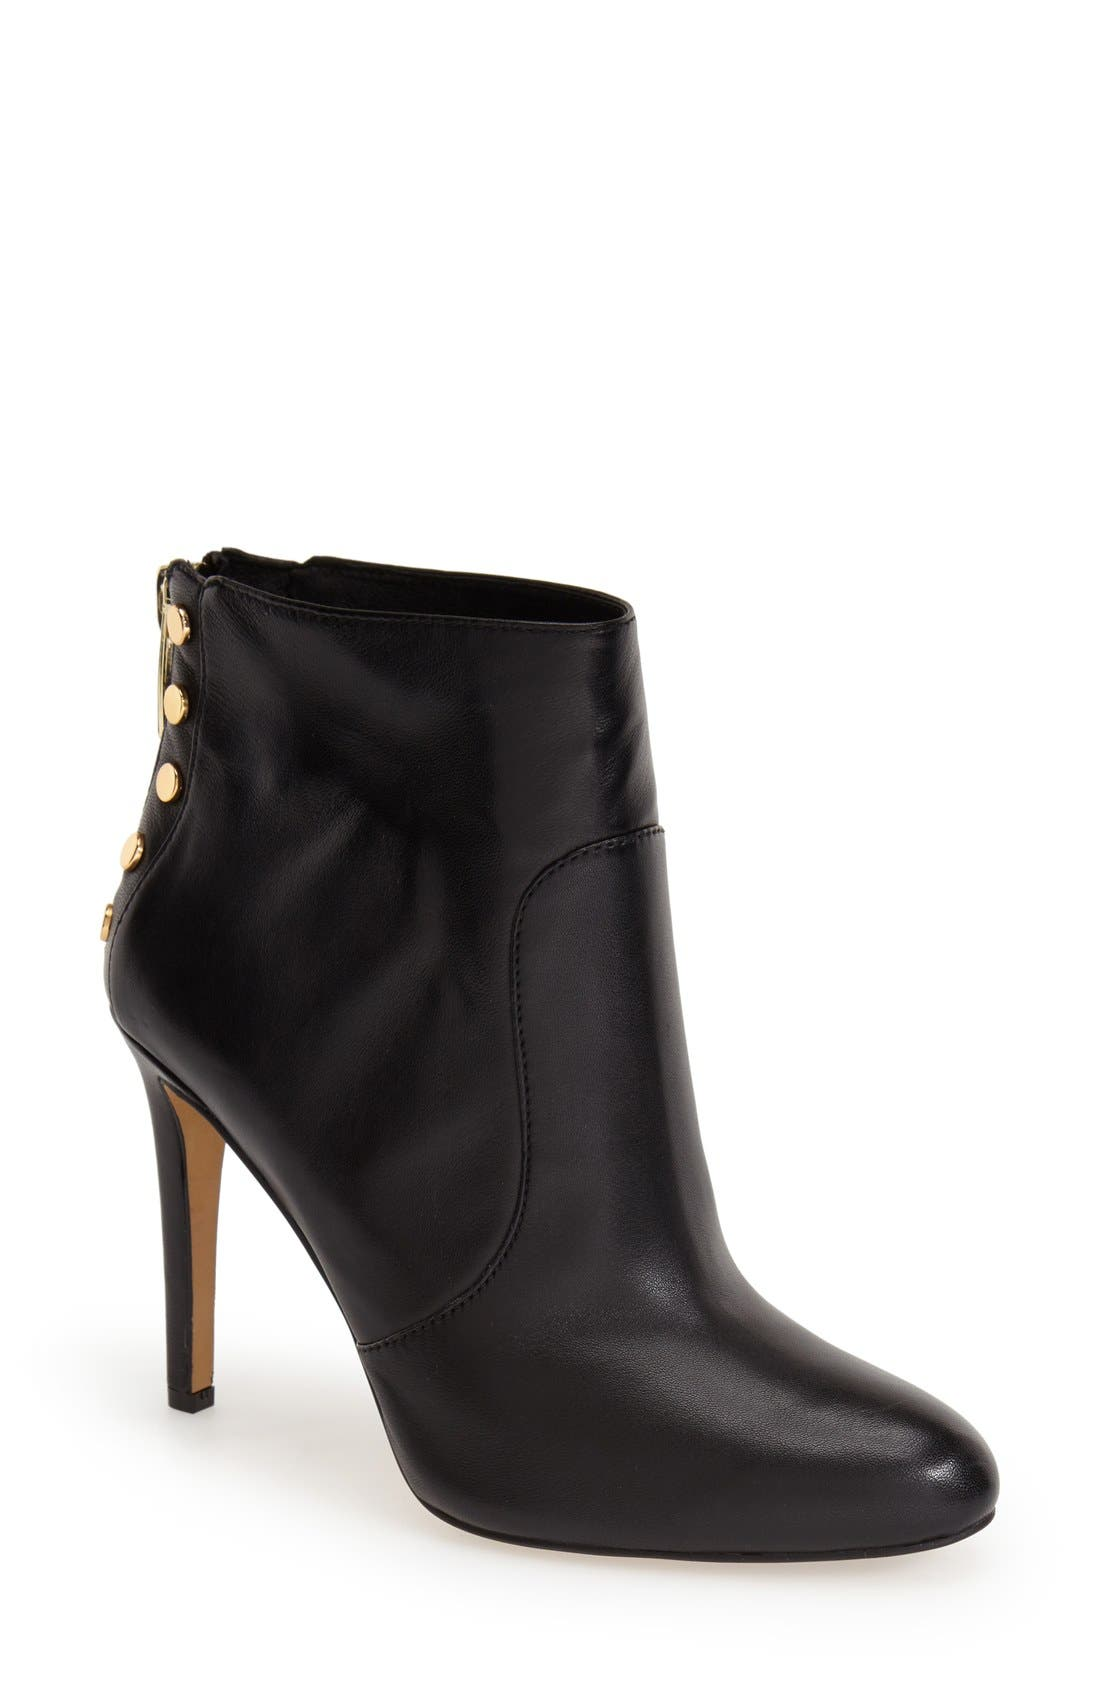 VINCE CAMUTO,                             'Bustell' Studded Bootie,                             Main thumbnail 1, color,                             001